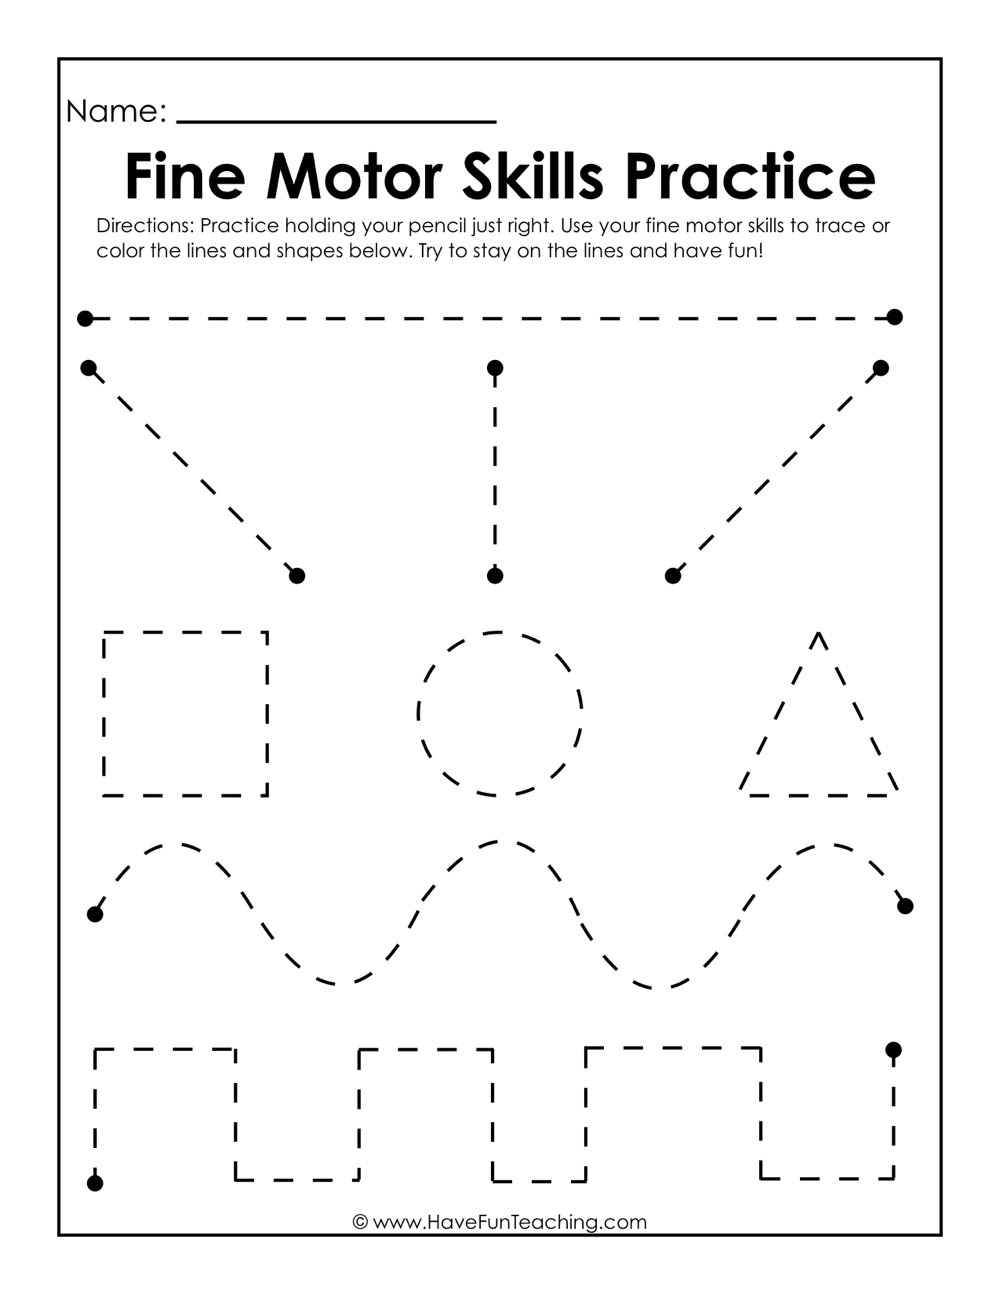 Resources | Writing | Handwriting | Worksheets - Free Printable Fine Motor Skills Worksheets